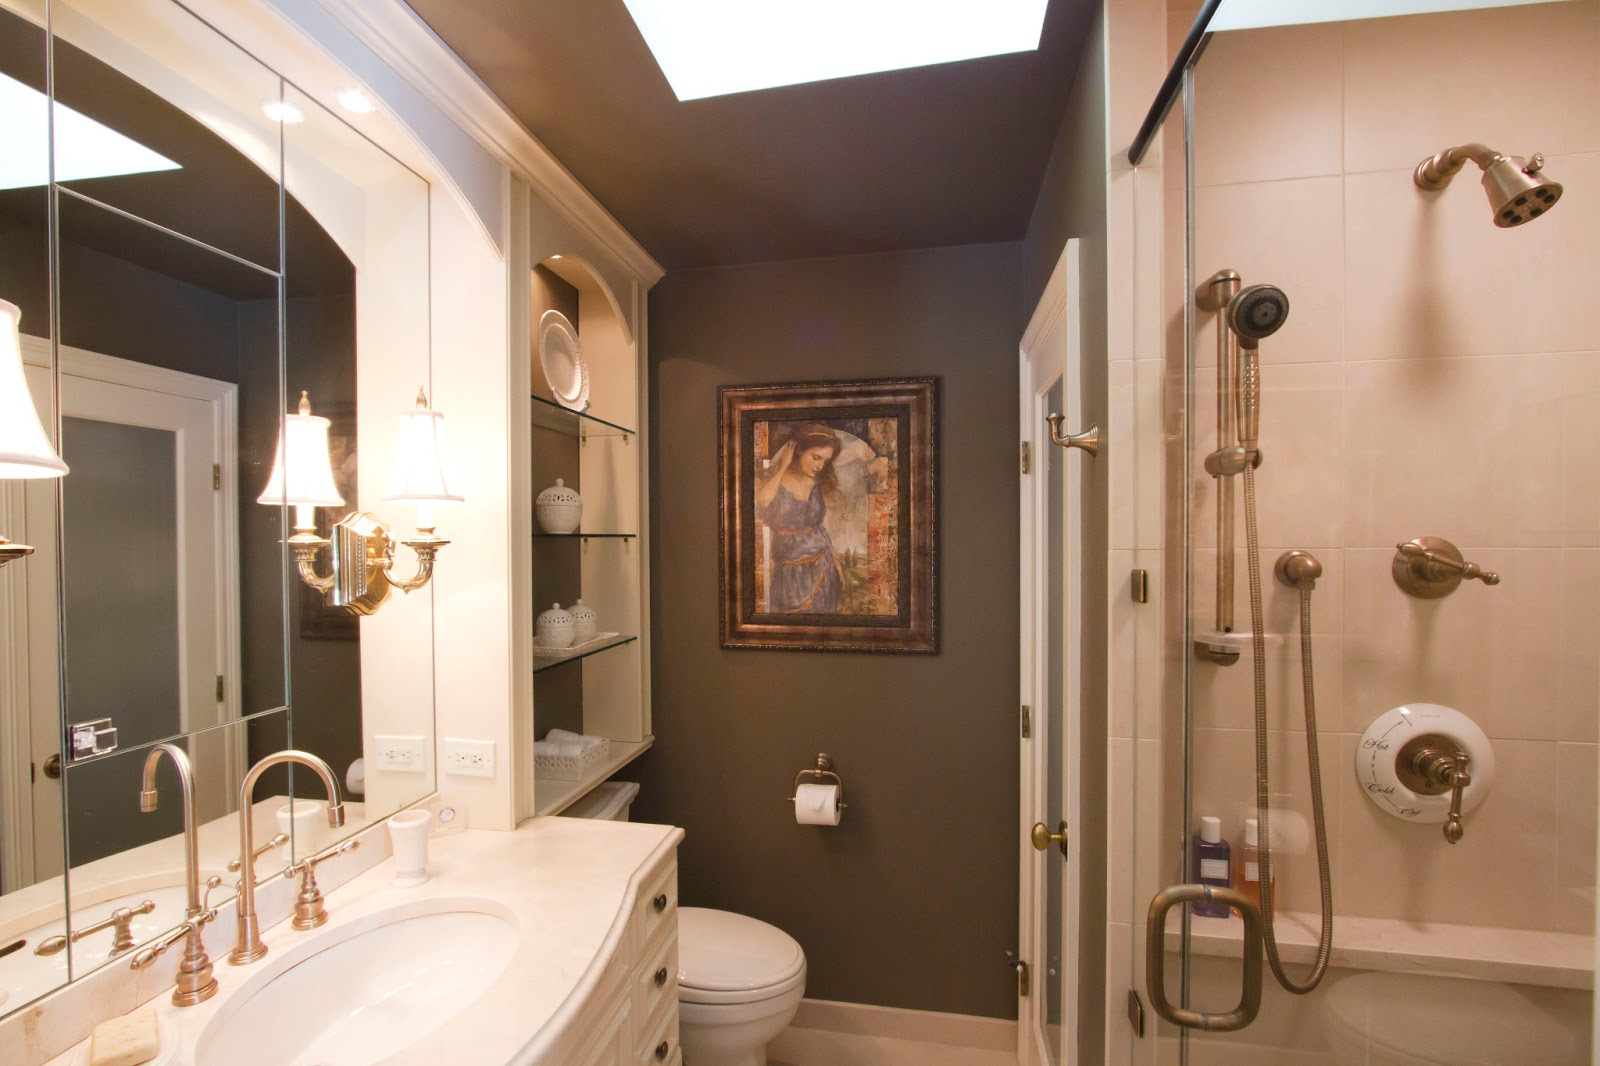 Small bathroom remodel here are things to consider - How to layout a bathroom remodel ...